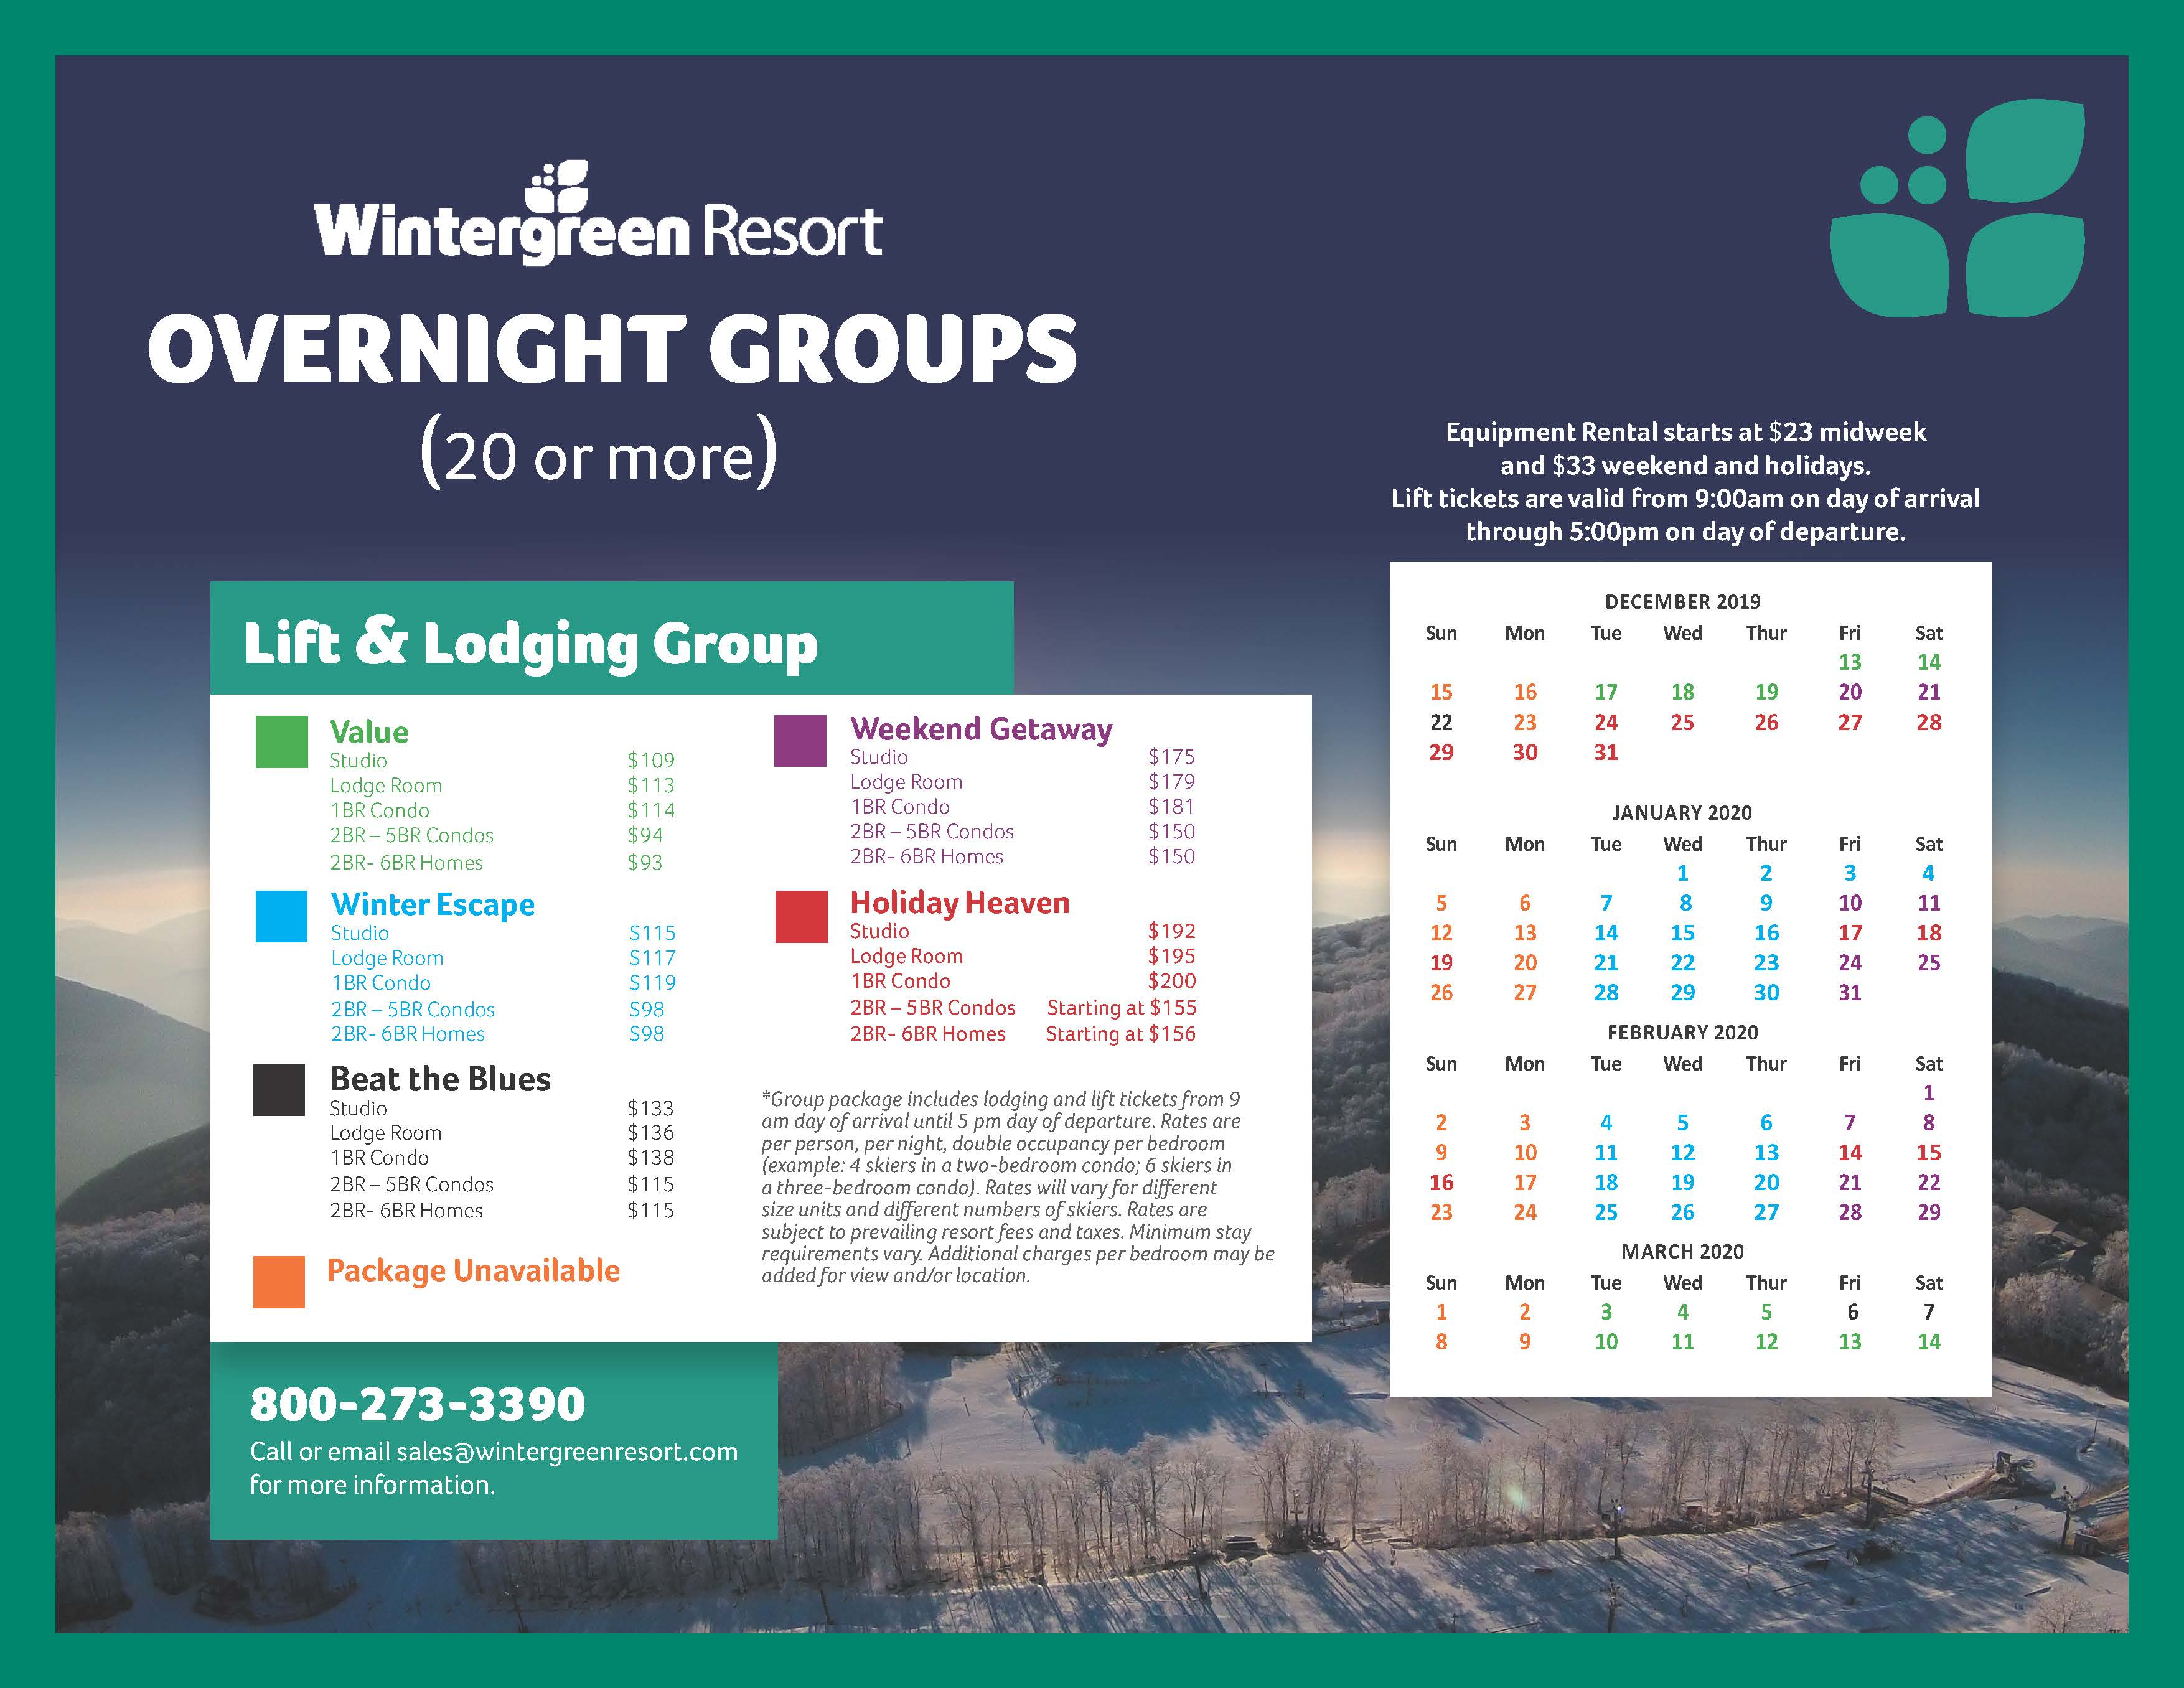 19-20_Overnight-Group-Rates